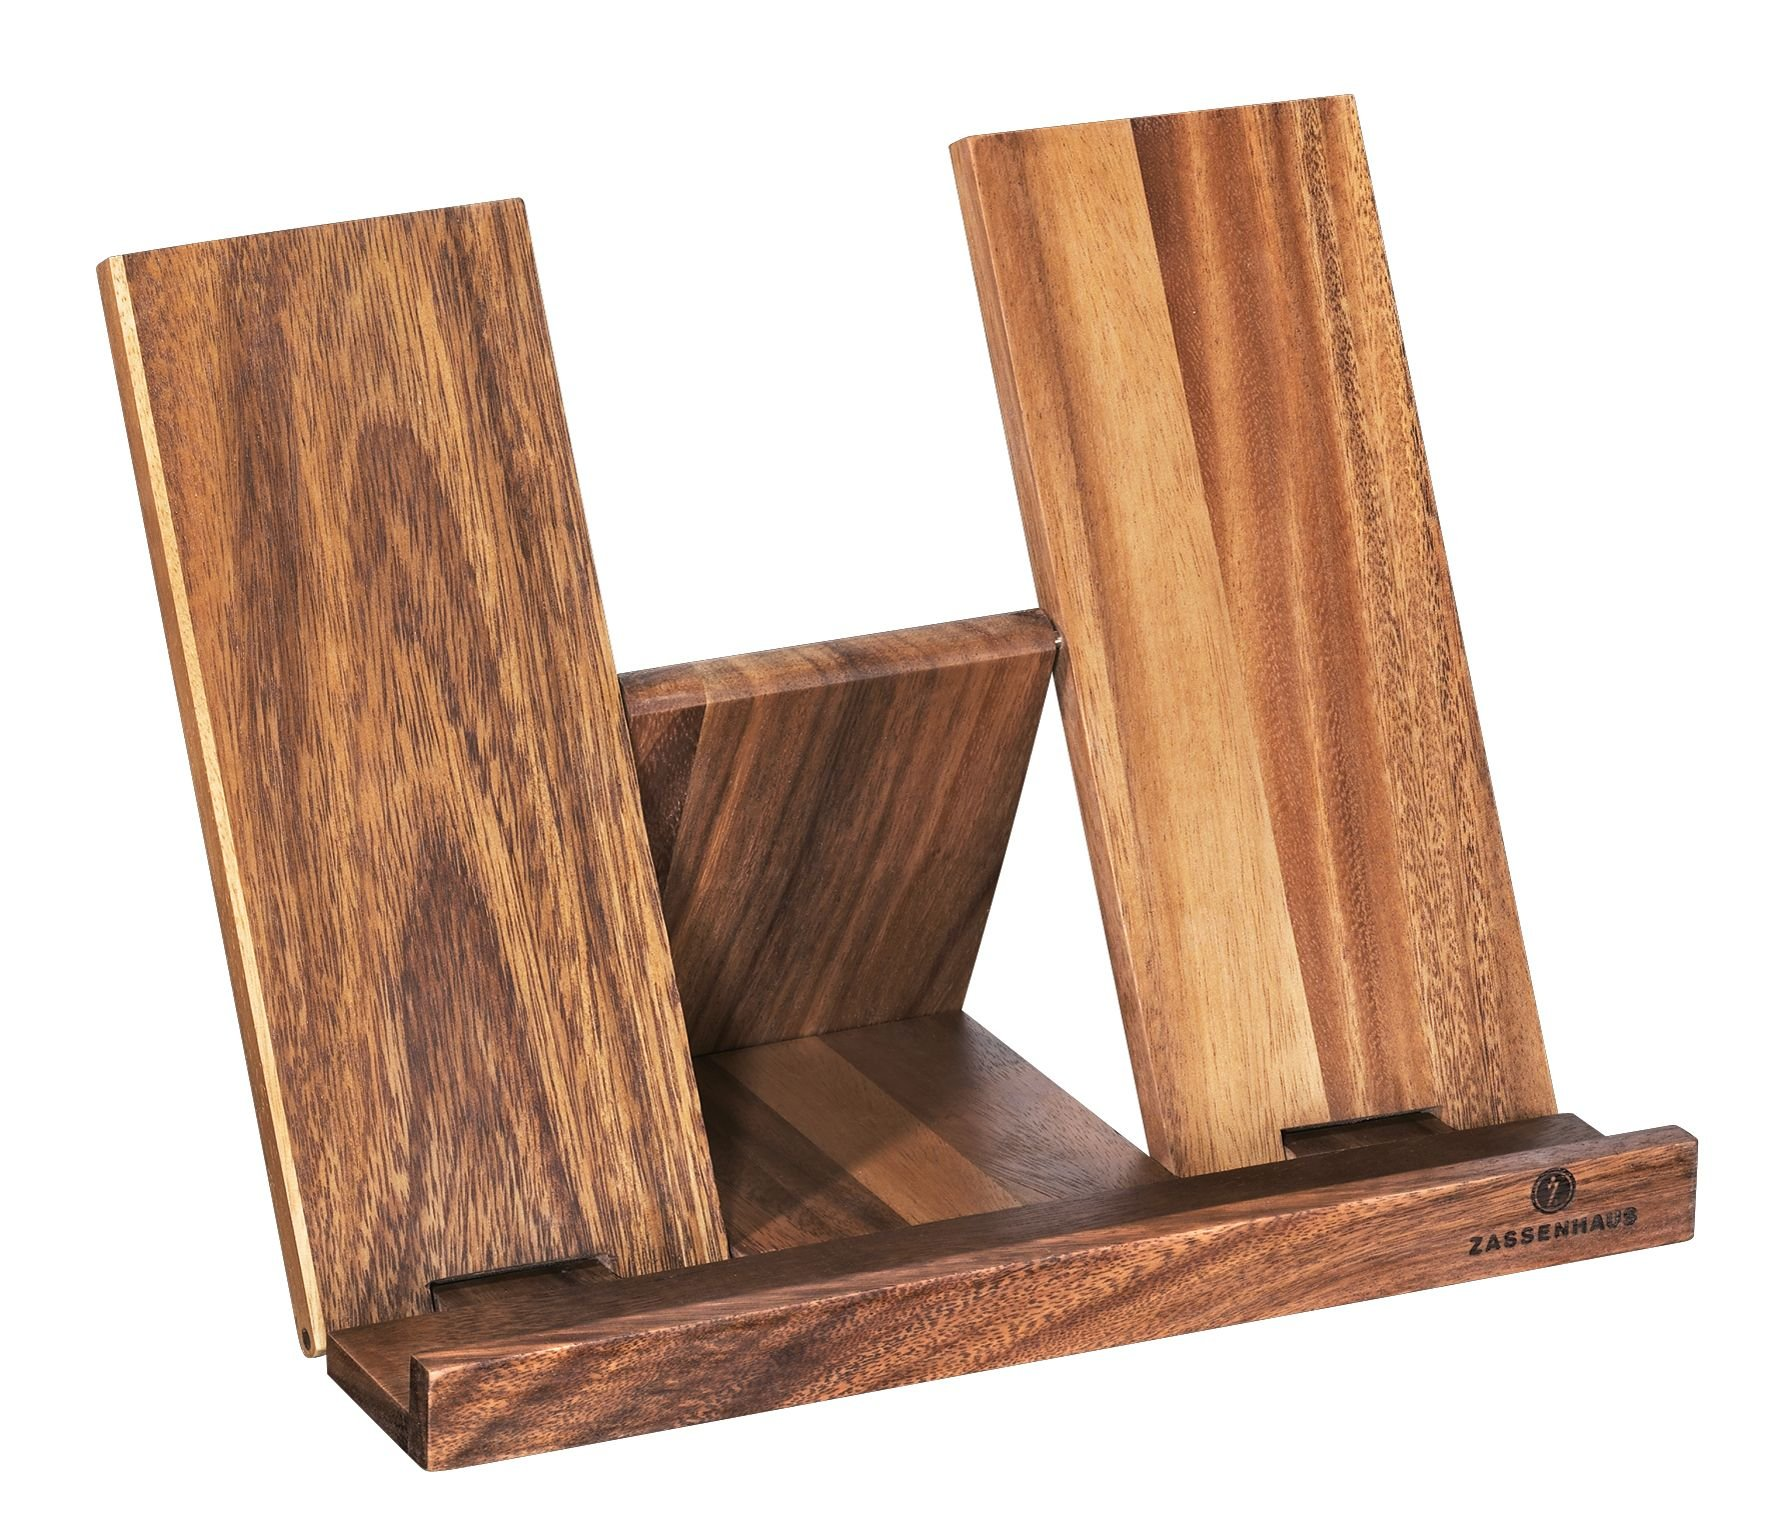 Zassenhaus: Cook Book Rest in Acacia Wood by Zassenhaus